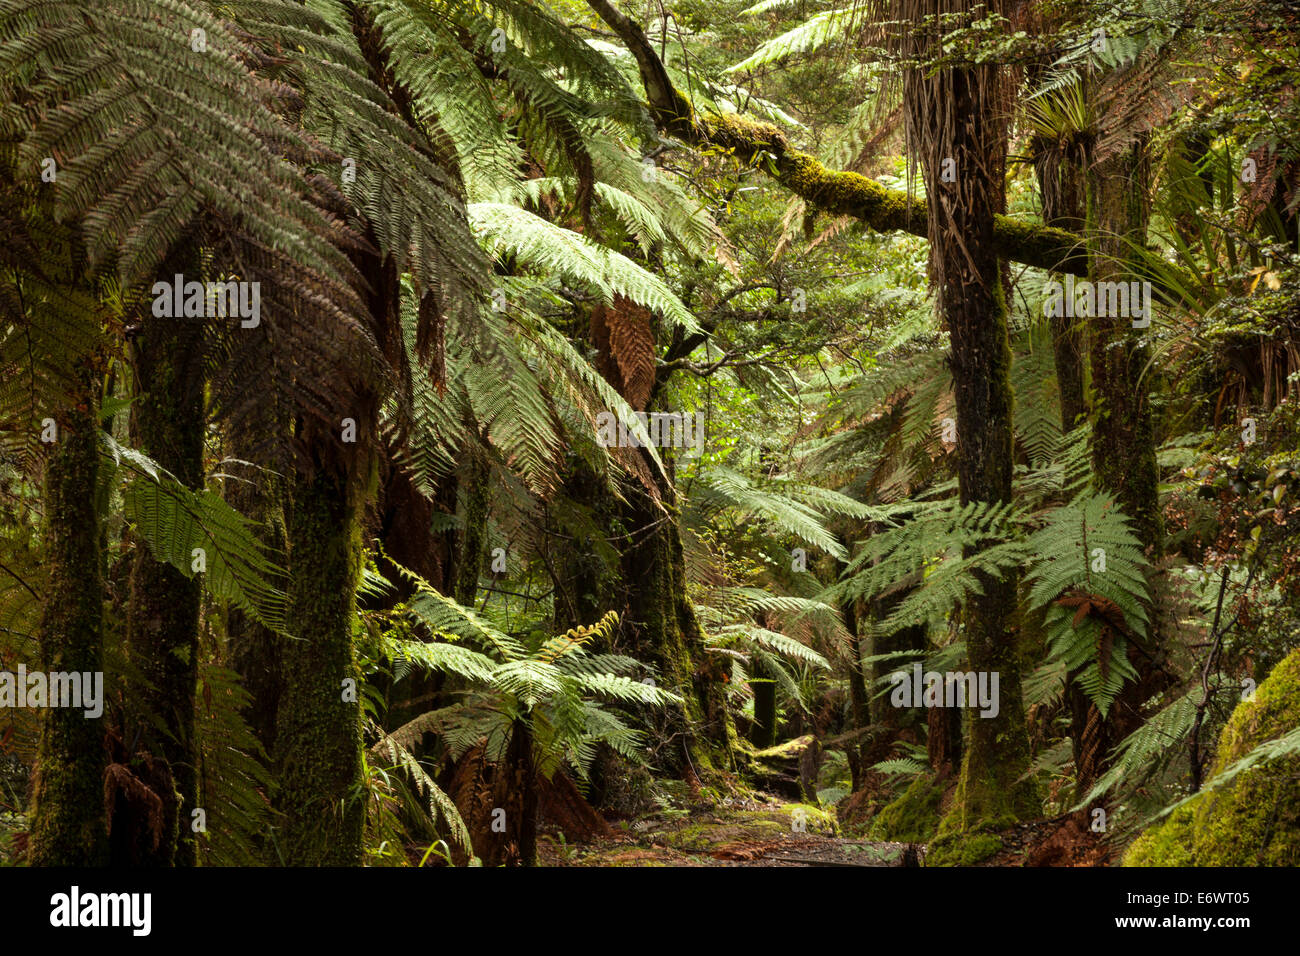 Primeval forest with tree ferns and moss covered podocarps, Children of the Mist, Lake Waikaremoana, Te Urewera - Stock Image